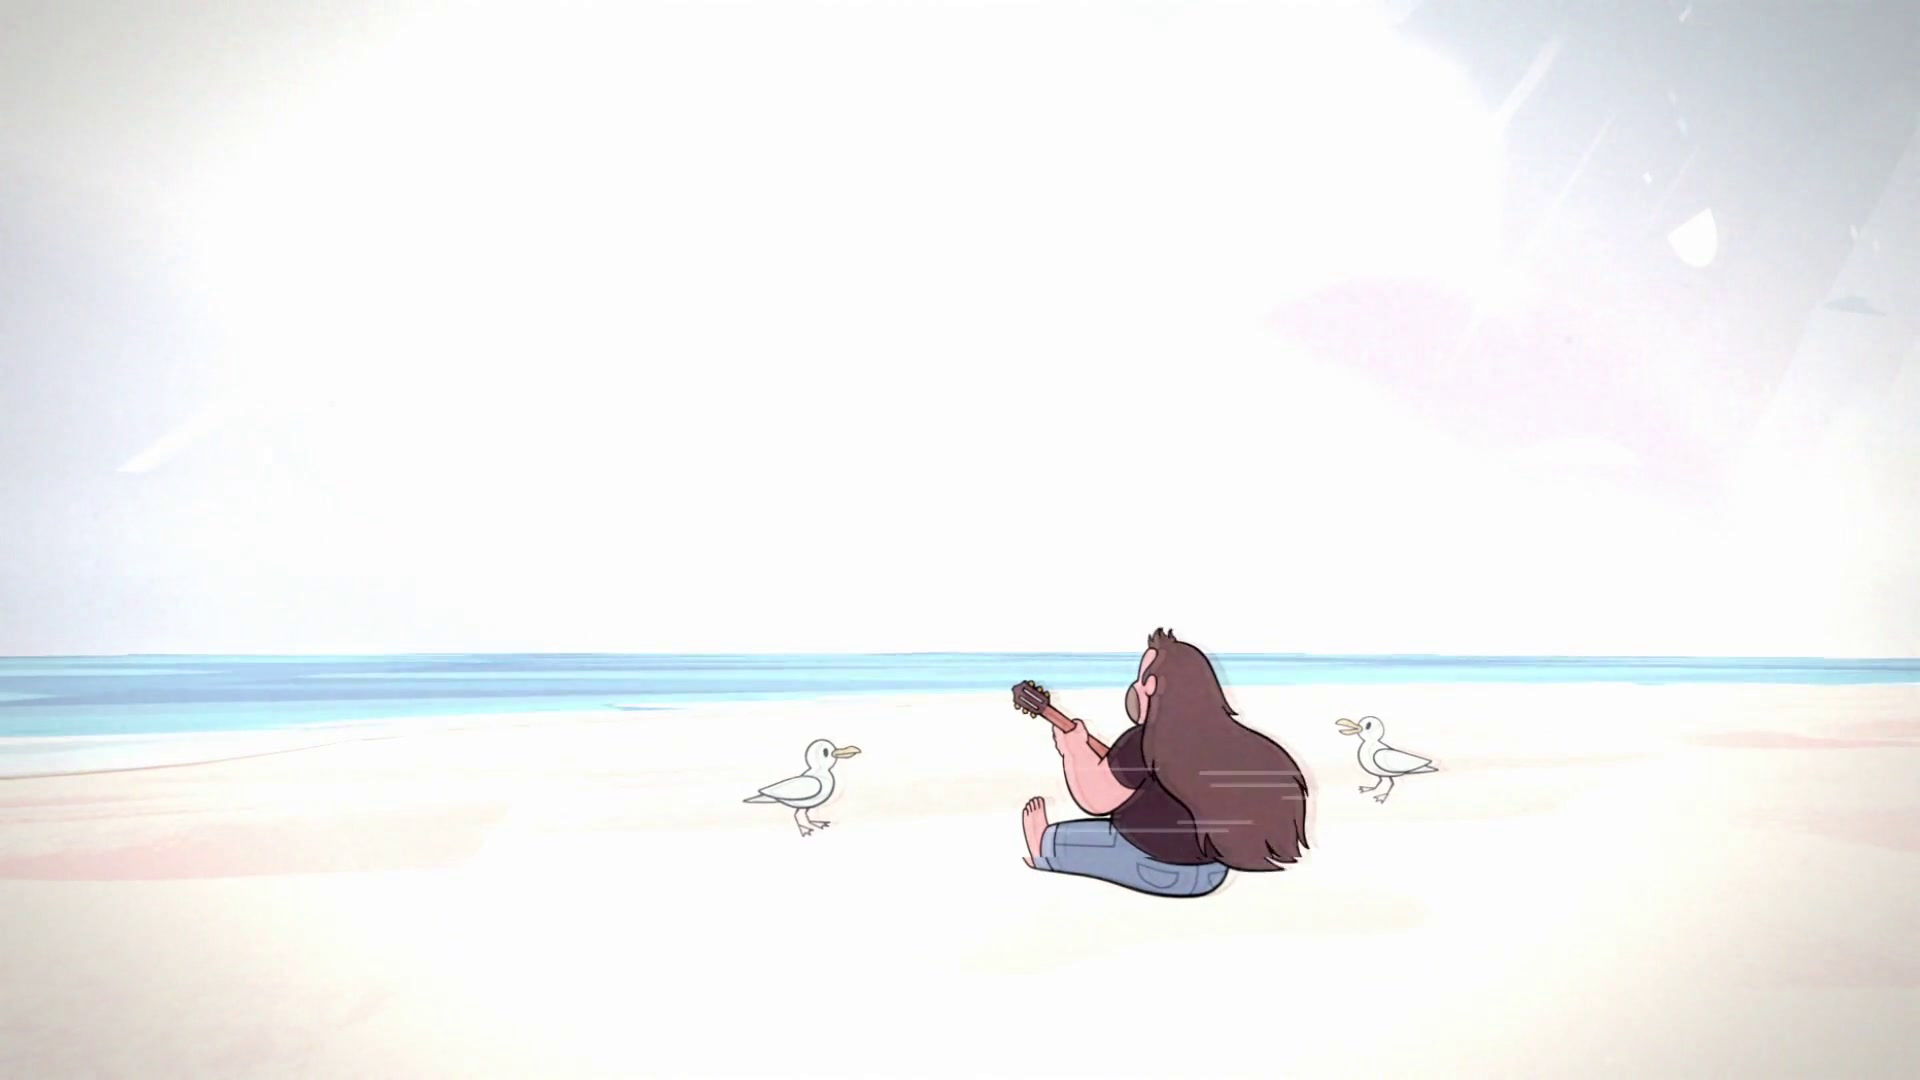 Greg on the Beach